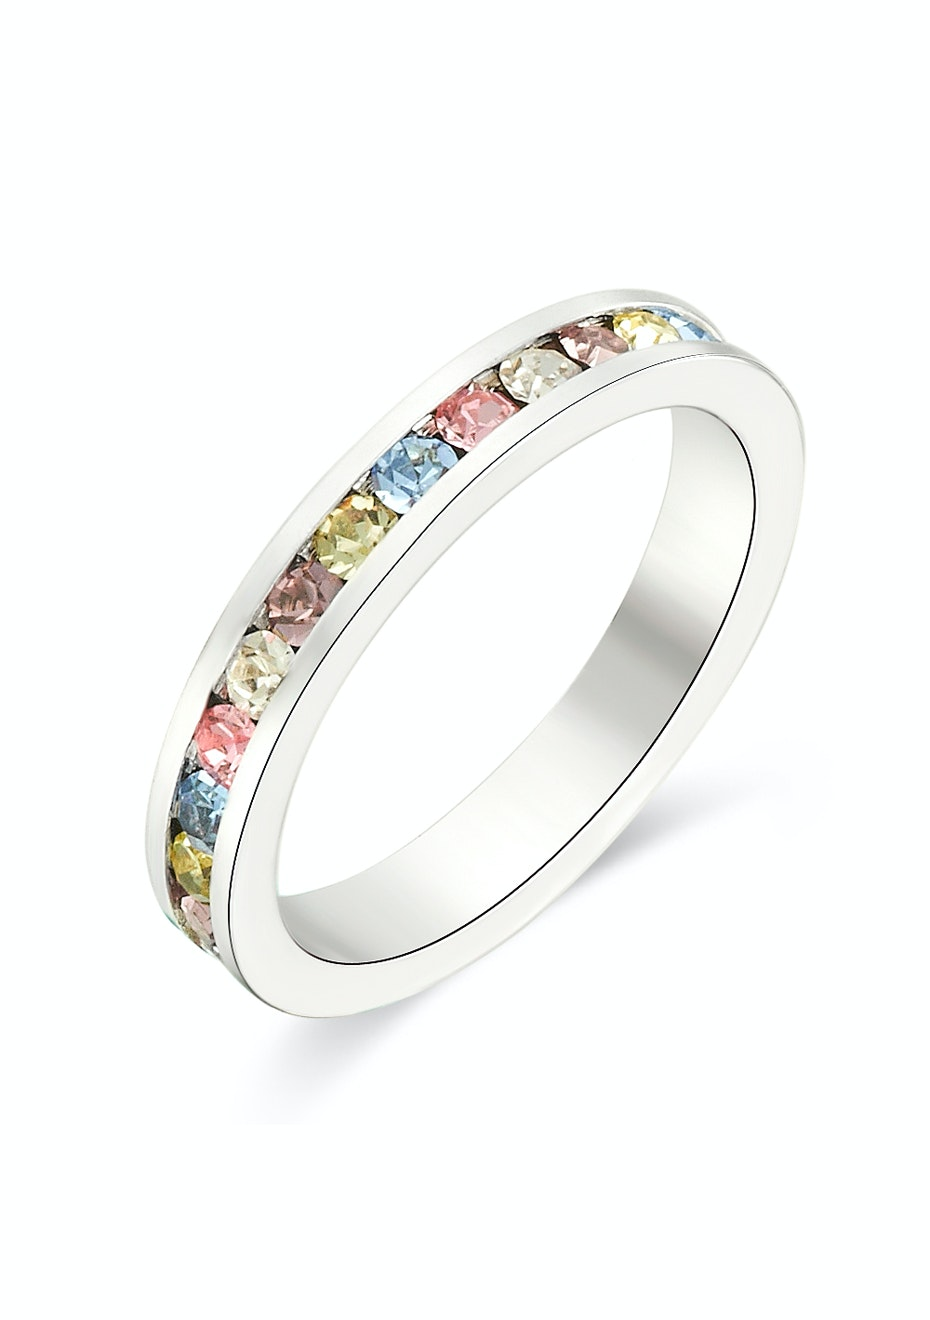 Stackable Ring -White Gold w Multicolour Embellished with Crystals from Swarovski